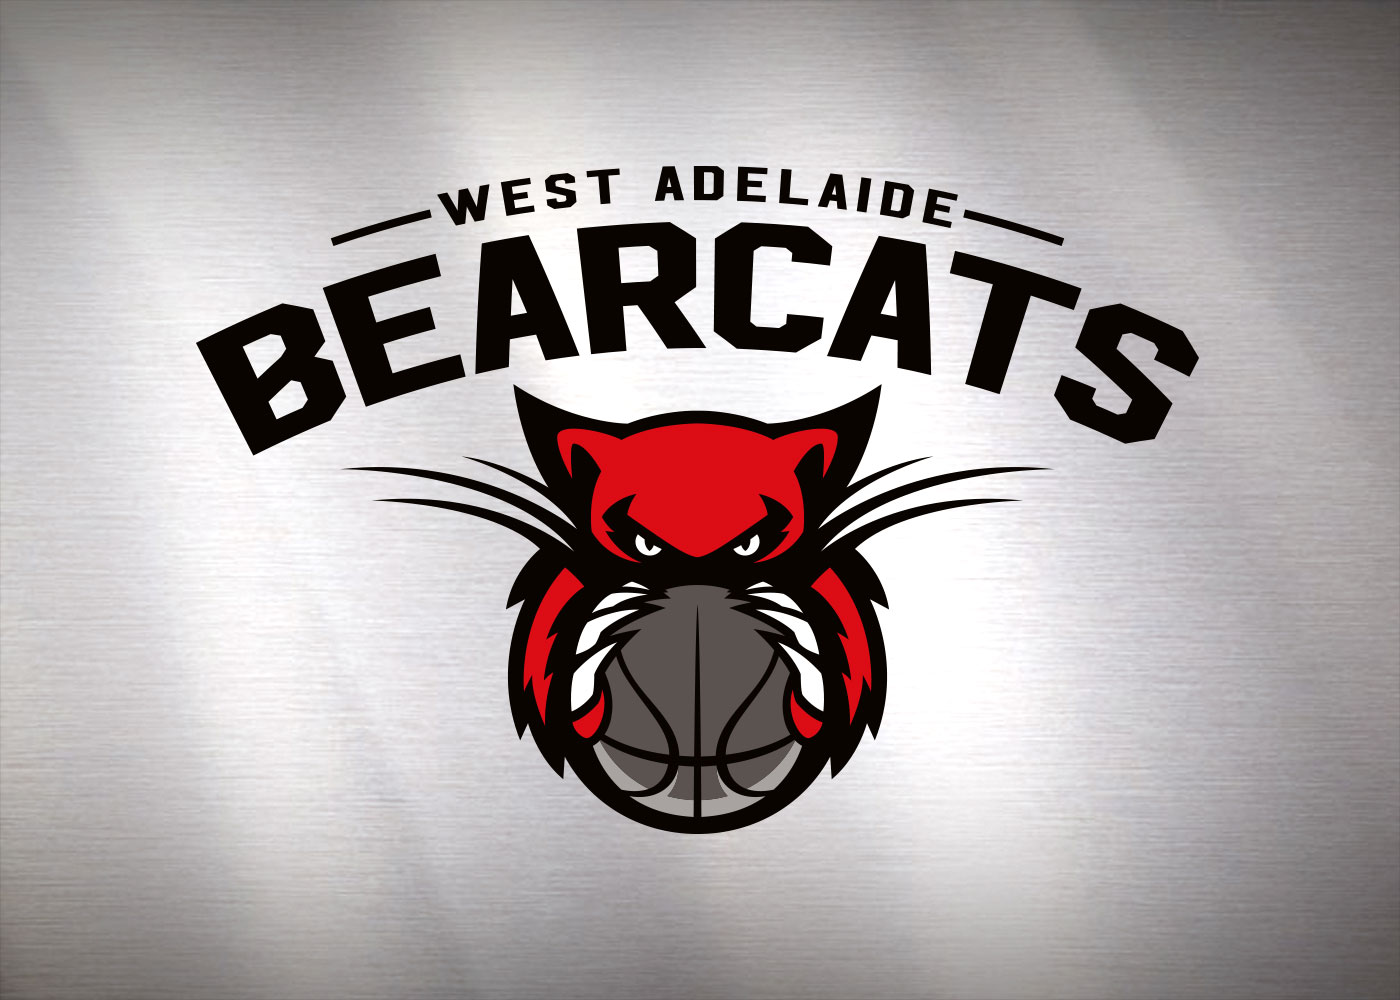 West Adelaide Bearcats - Primary logo